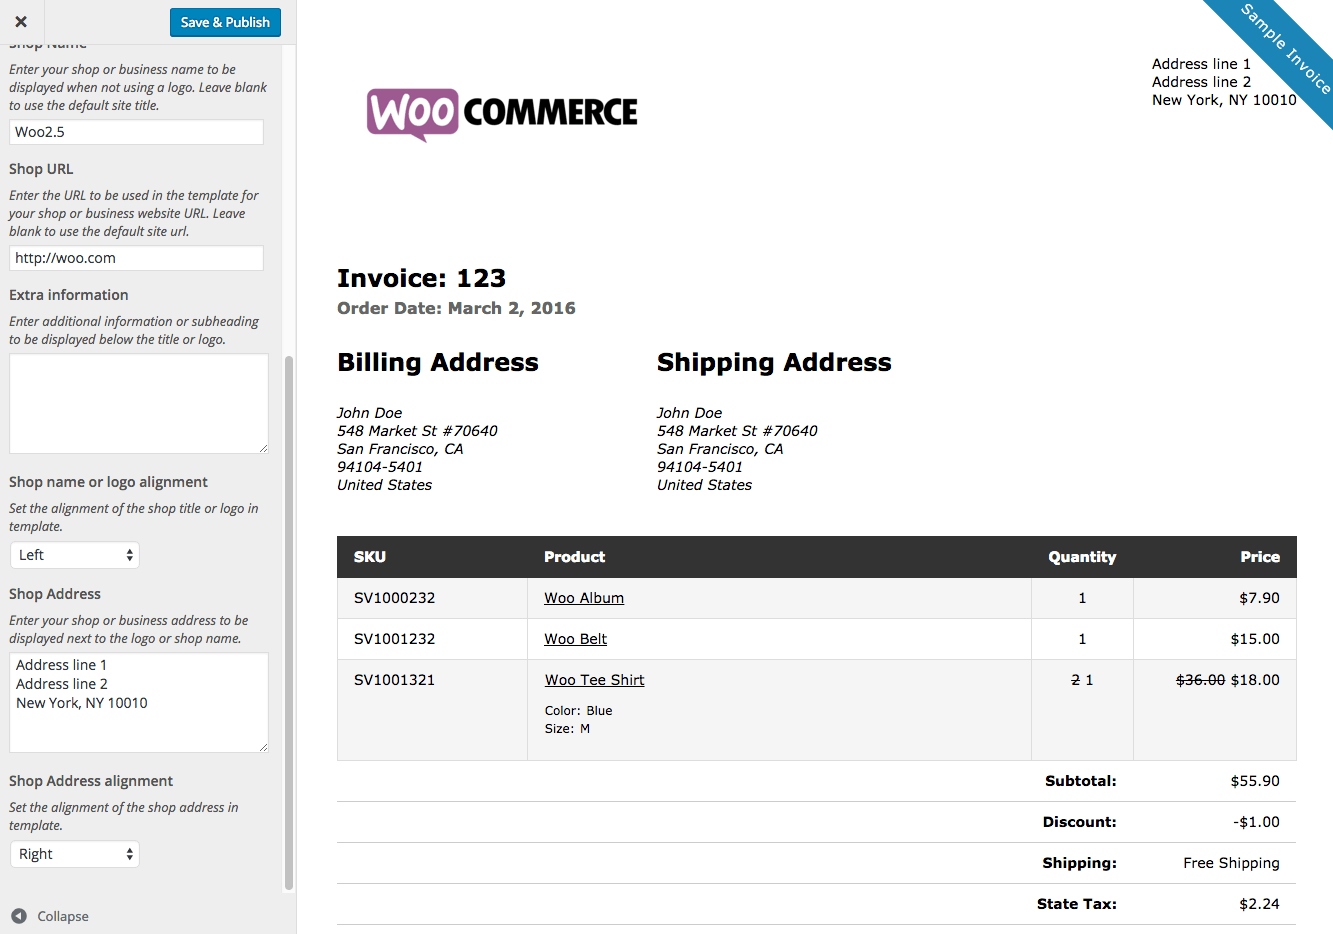 Floobydustus  Nice Woocommerce Print Invoices Amp Packing Lists  Woocommerce Docs With Entrancing Woocommerce Print Invoices  Packing Lists Customizer With Easy On The Eye Maersk Line Detention Invoice Also Invoice Creating Software In Addition Free Service Invoice Templates And Best Free Invoice Software For Small Business As Well As Invoice Free Software Download Additionally Invoice Finance Companies From Docswoocommercecom With Floobydustus  Entrancing Woocommerce Print Invoices Amp Packing Lists  Woocommerce Docs With Easy On The Eye Woocommerce Print Invoices  Packing Lists Customizer And Nice Maersk Line Detention Invoice Also Invoice Creating Software In Addition Free Service Invoice Templates From Docswoocommercecom